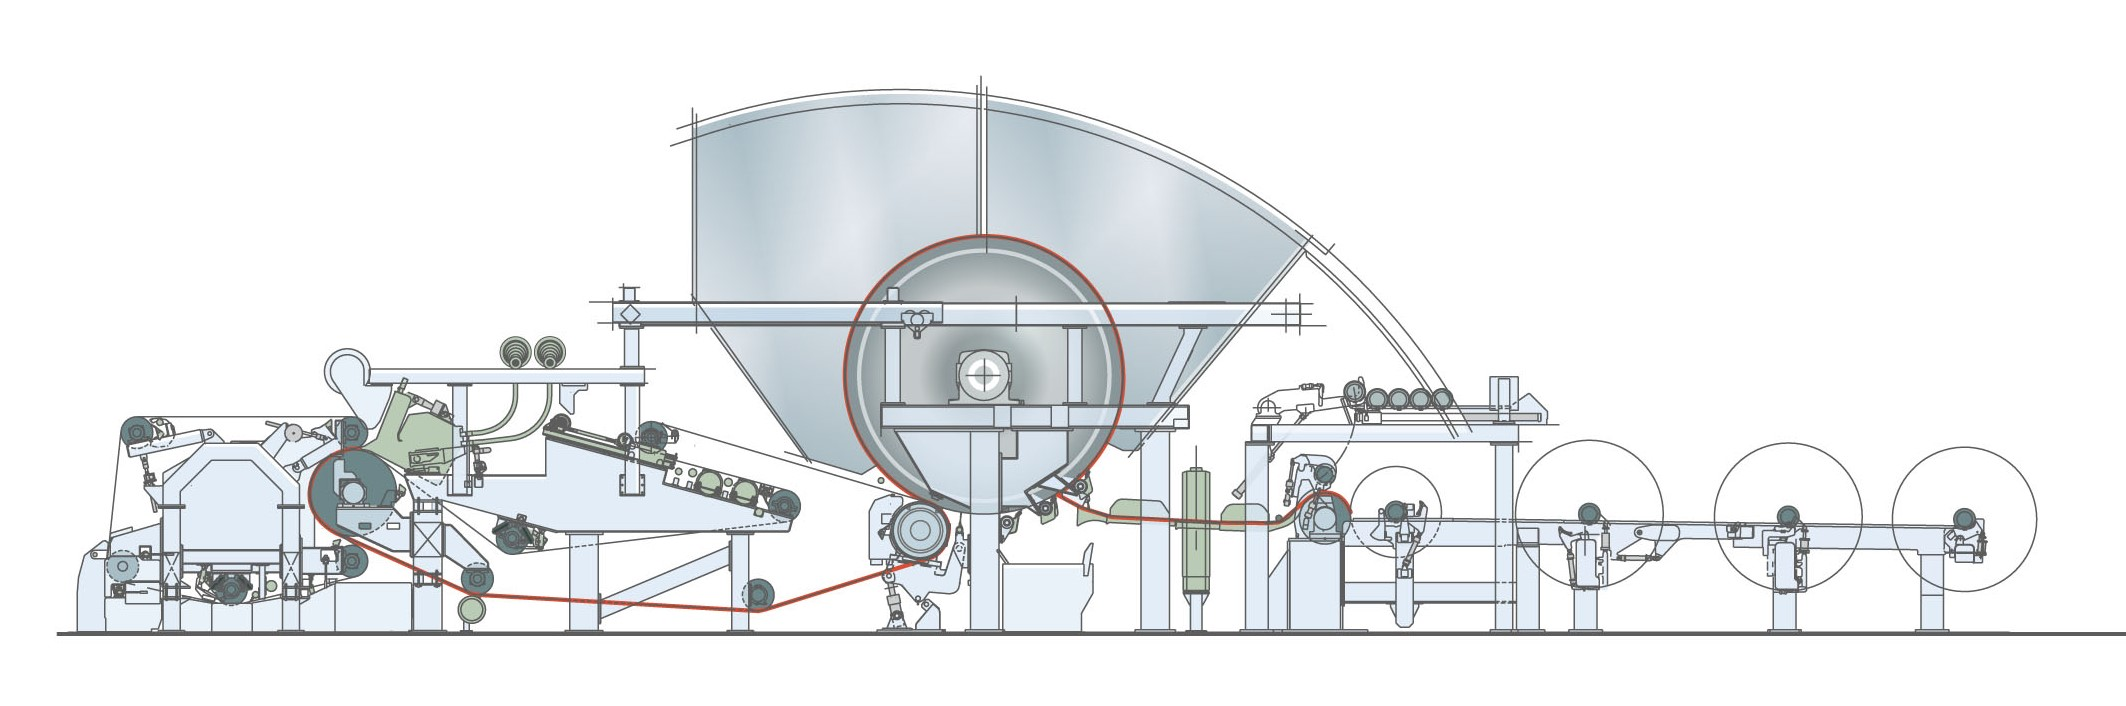 Crescent Former Or Conventional Tissue Machine Technology The Vacuum Diagram Typical Dry Crepe Dct Configuration With Paper Sheet Run Shown In Red